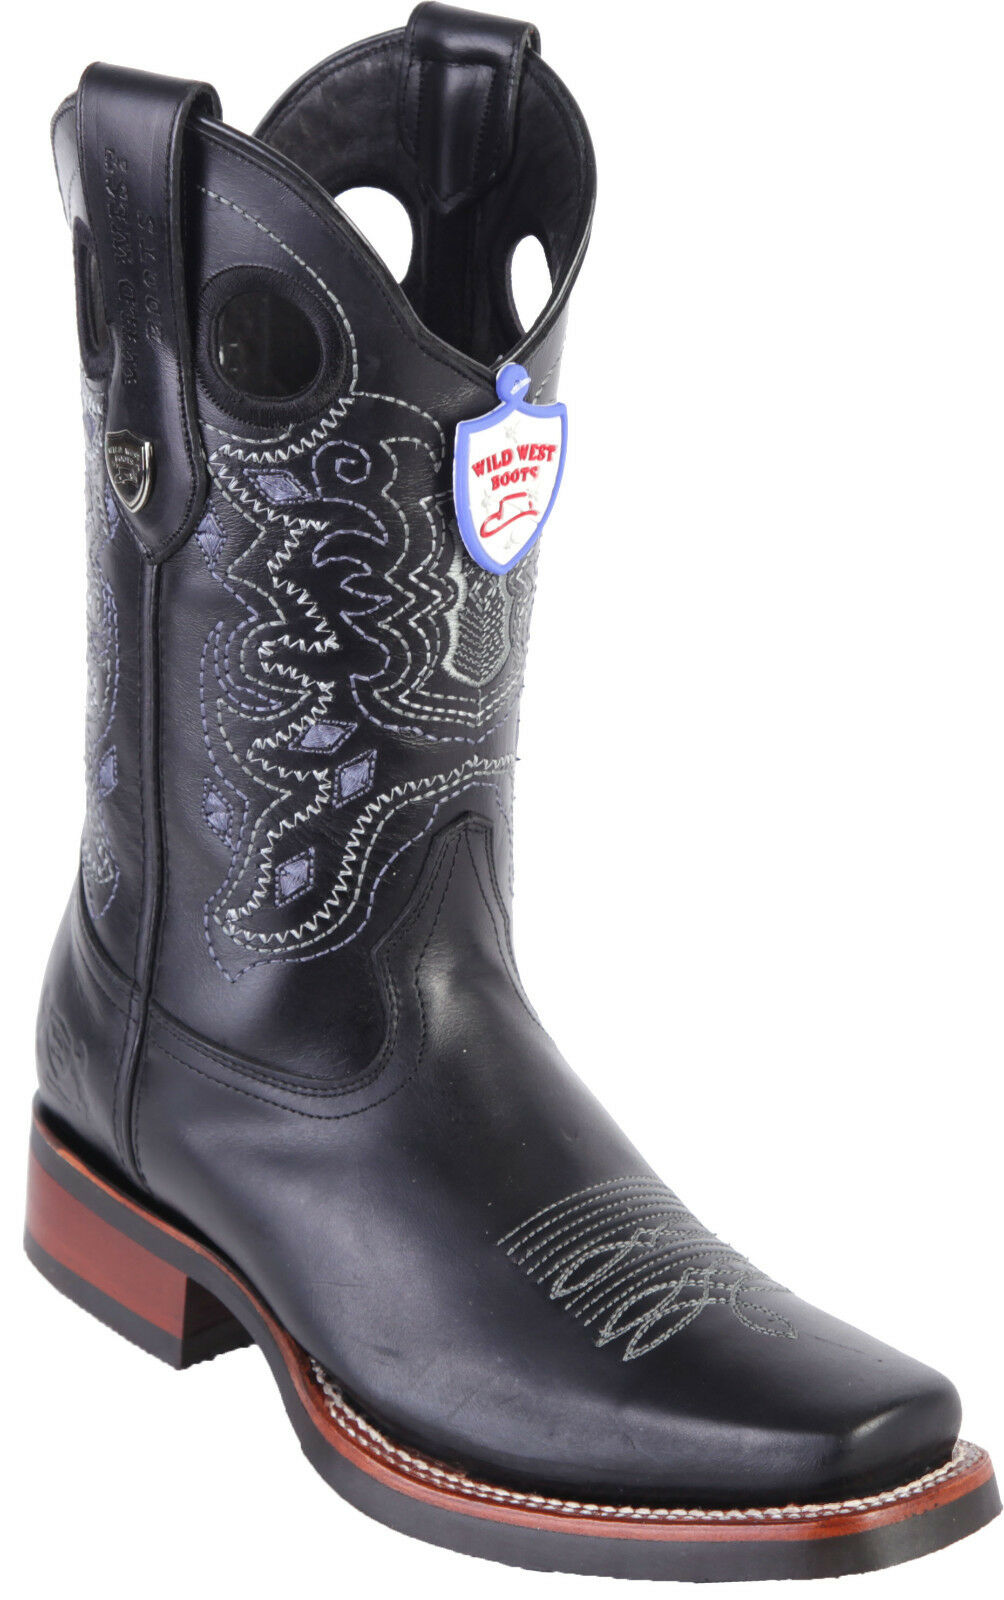 Men's Wild West Western Boots Square Toe Genuine Pull Up Leather Rubber Sole